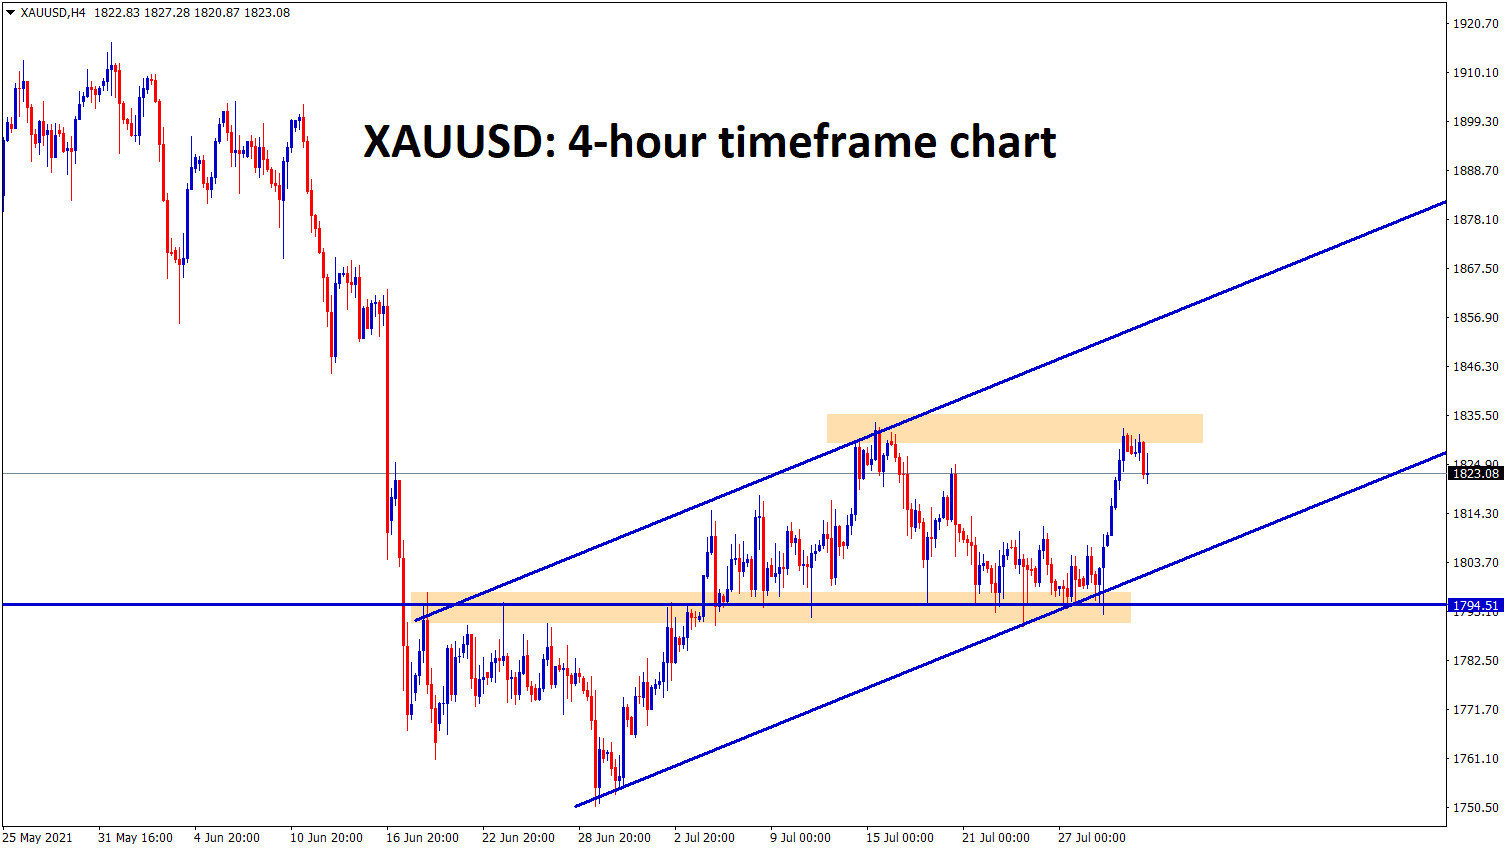 Gold is making a correction fromt he resistance zone in an uptrend